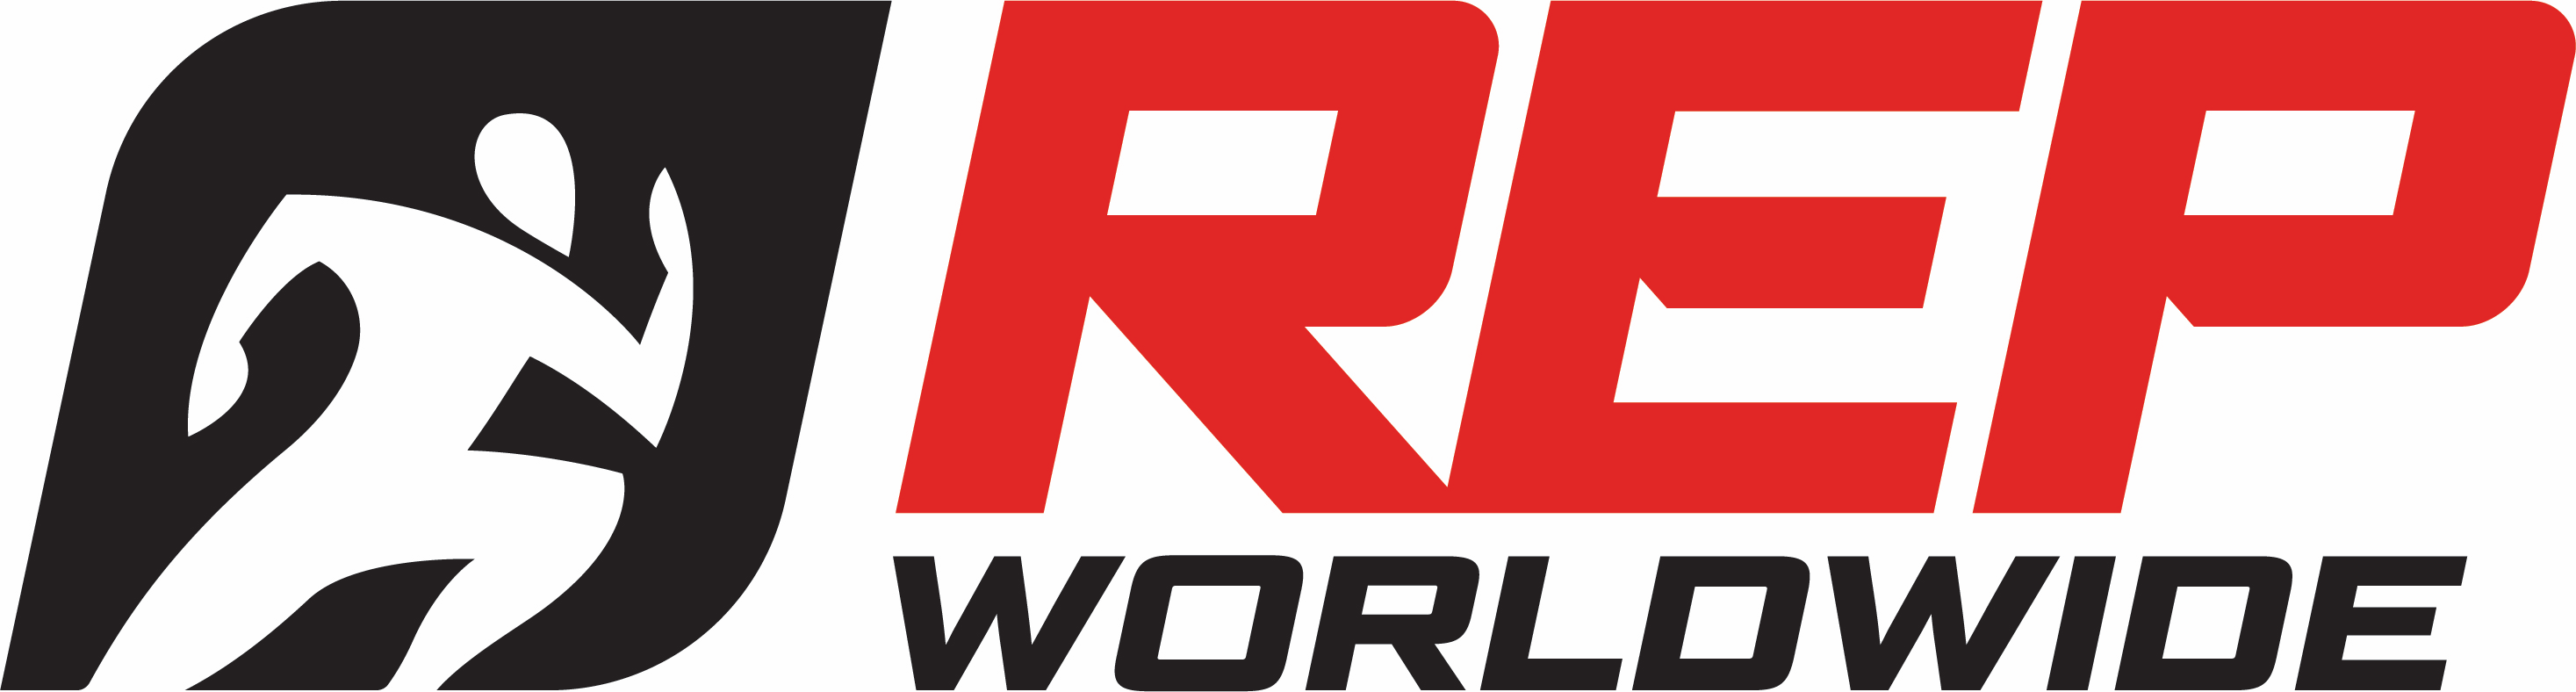 Nfl Players Inc Rep Worldwide Launches As Full Service Brand